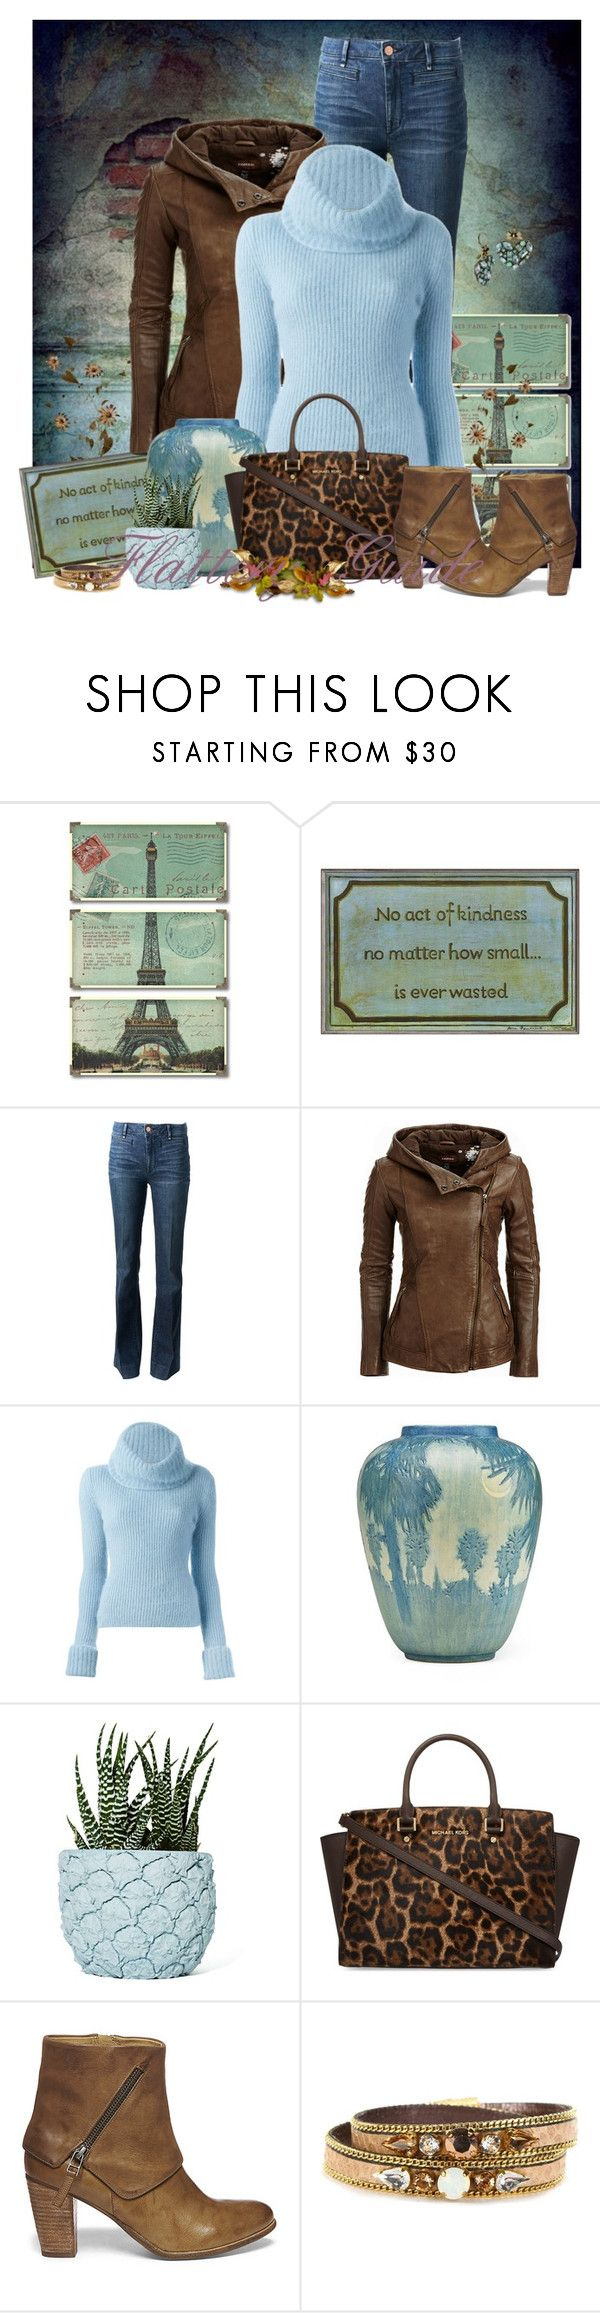 """""""Bette"""" by flattery-guide ❤ liked on Polyvore featuring Uttermost, Stupell, Marc by Marc Jacobs, Danier, Ermanno Scervino, Chen Chen & Kai Williams, MICHAEL Michael Kors, Steve Madden, Bibi Bijoux and Betsey Johnson"""